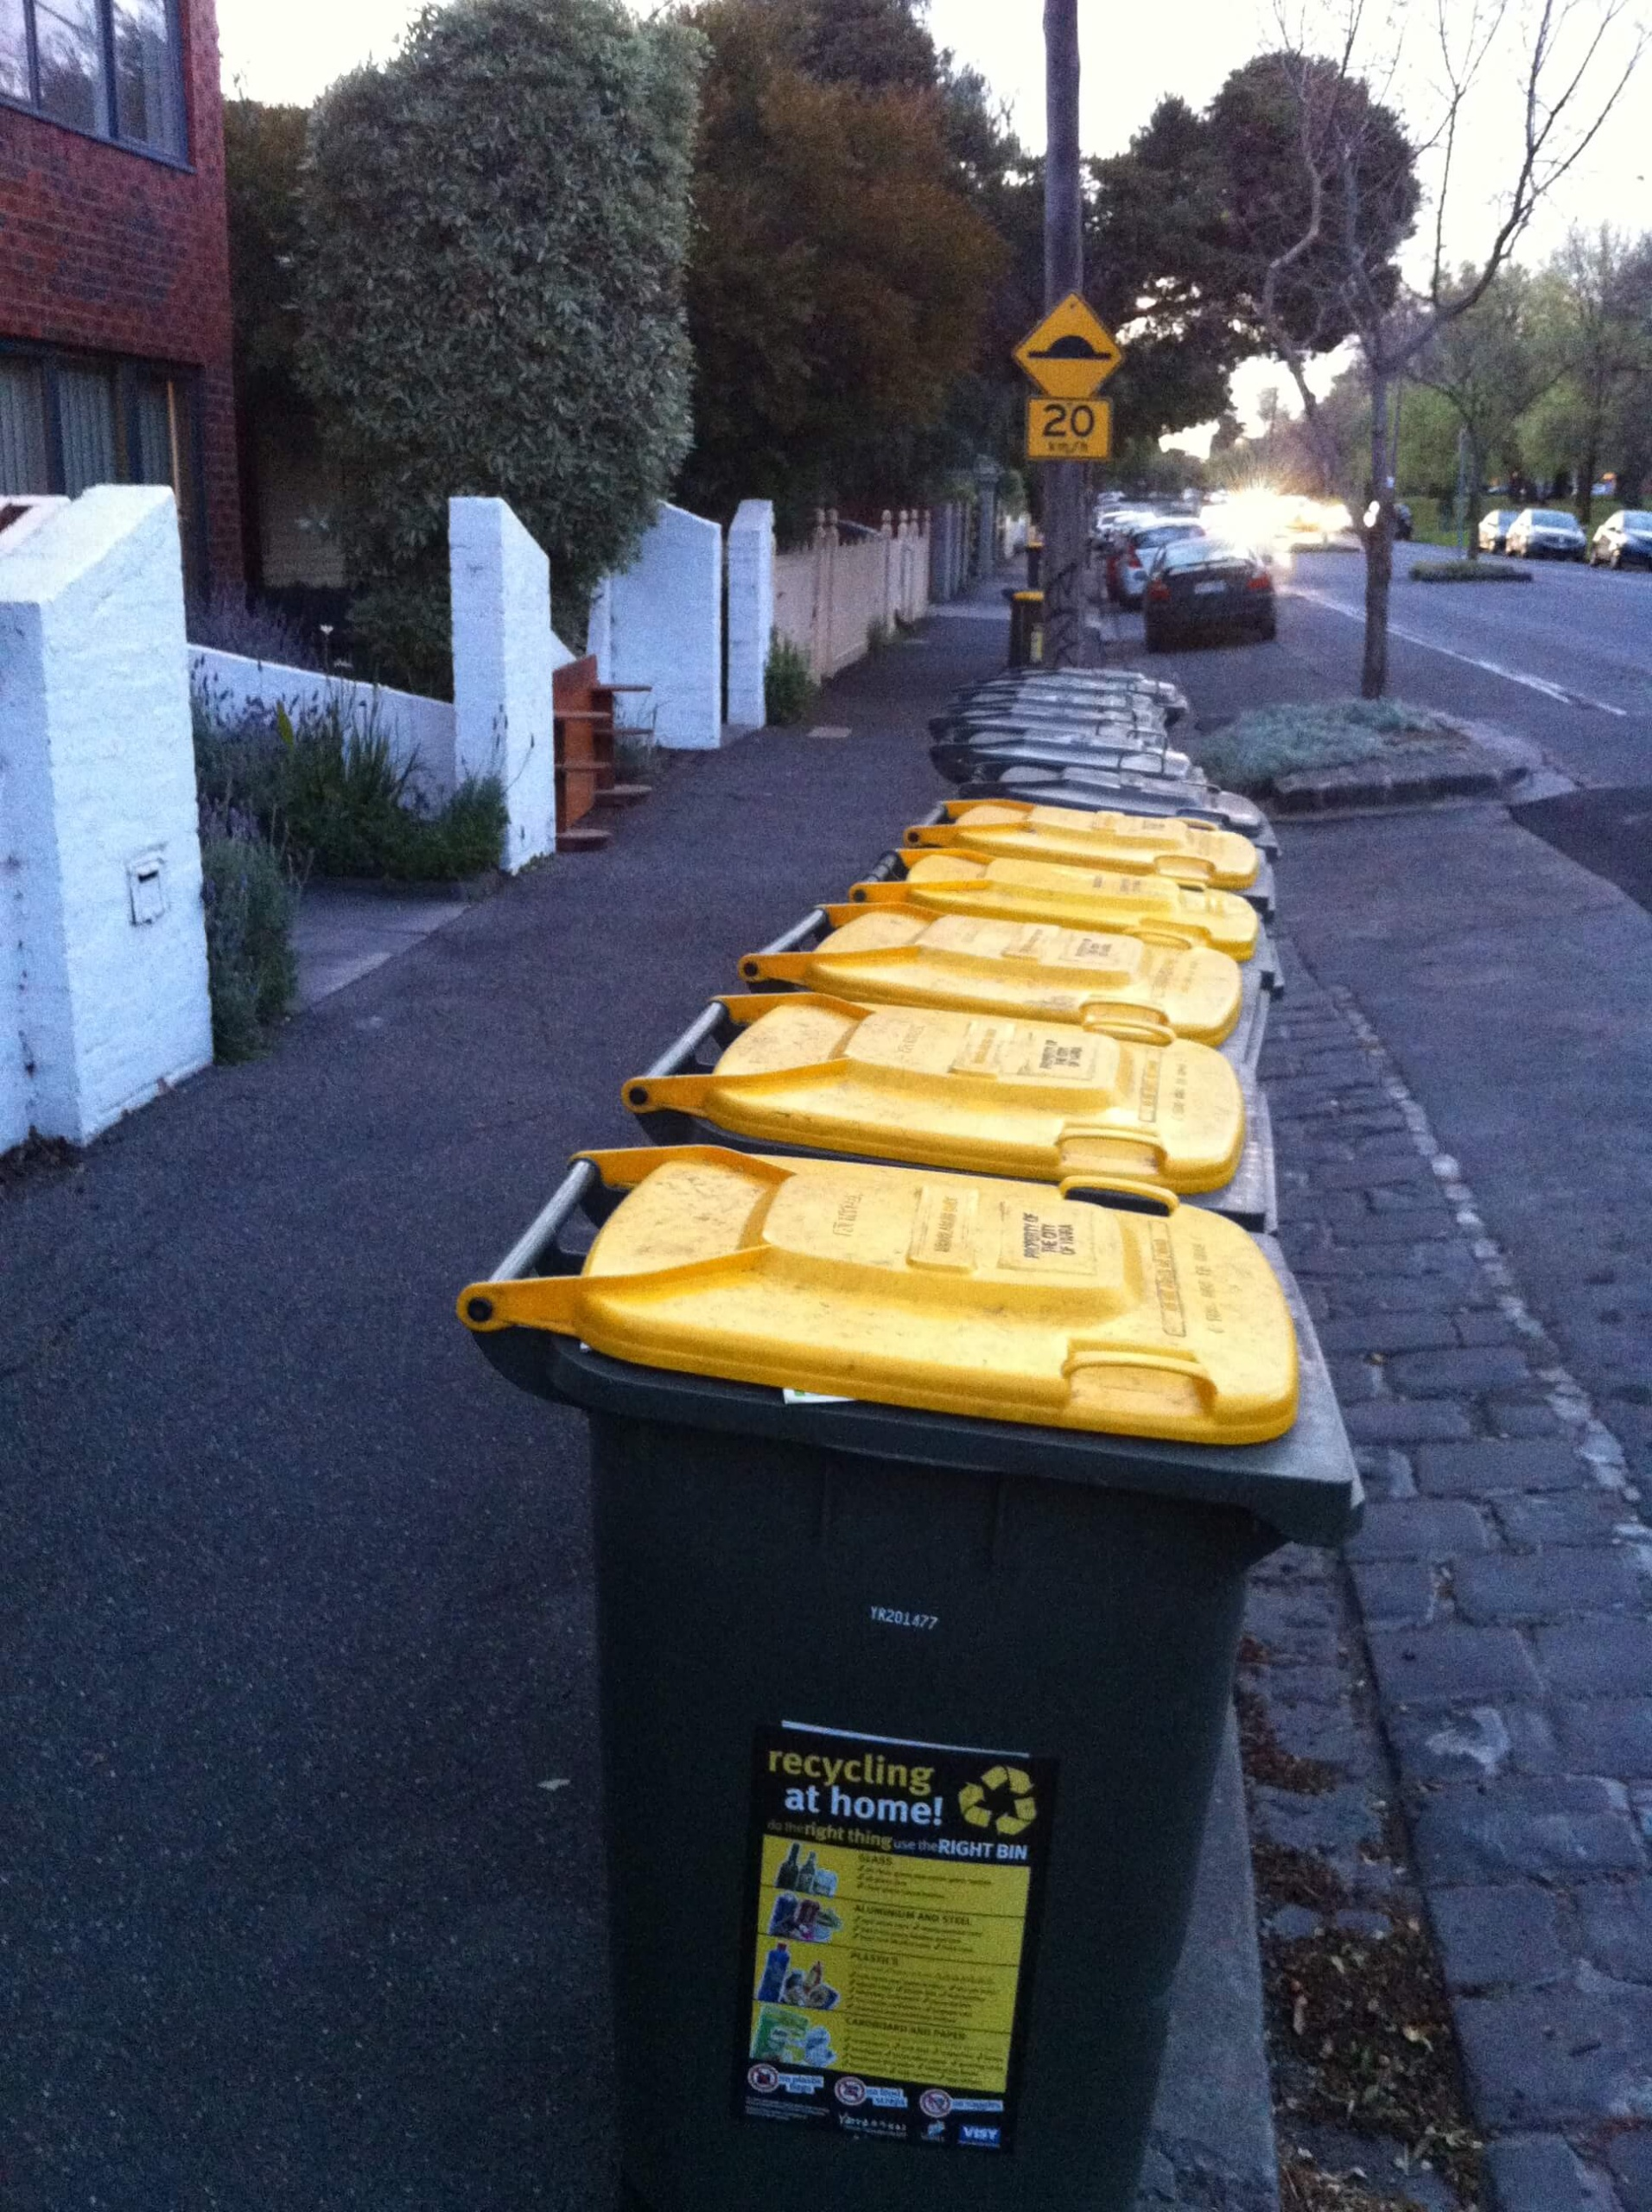 recycling bins for waste management plans